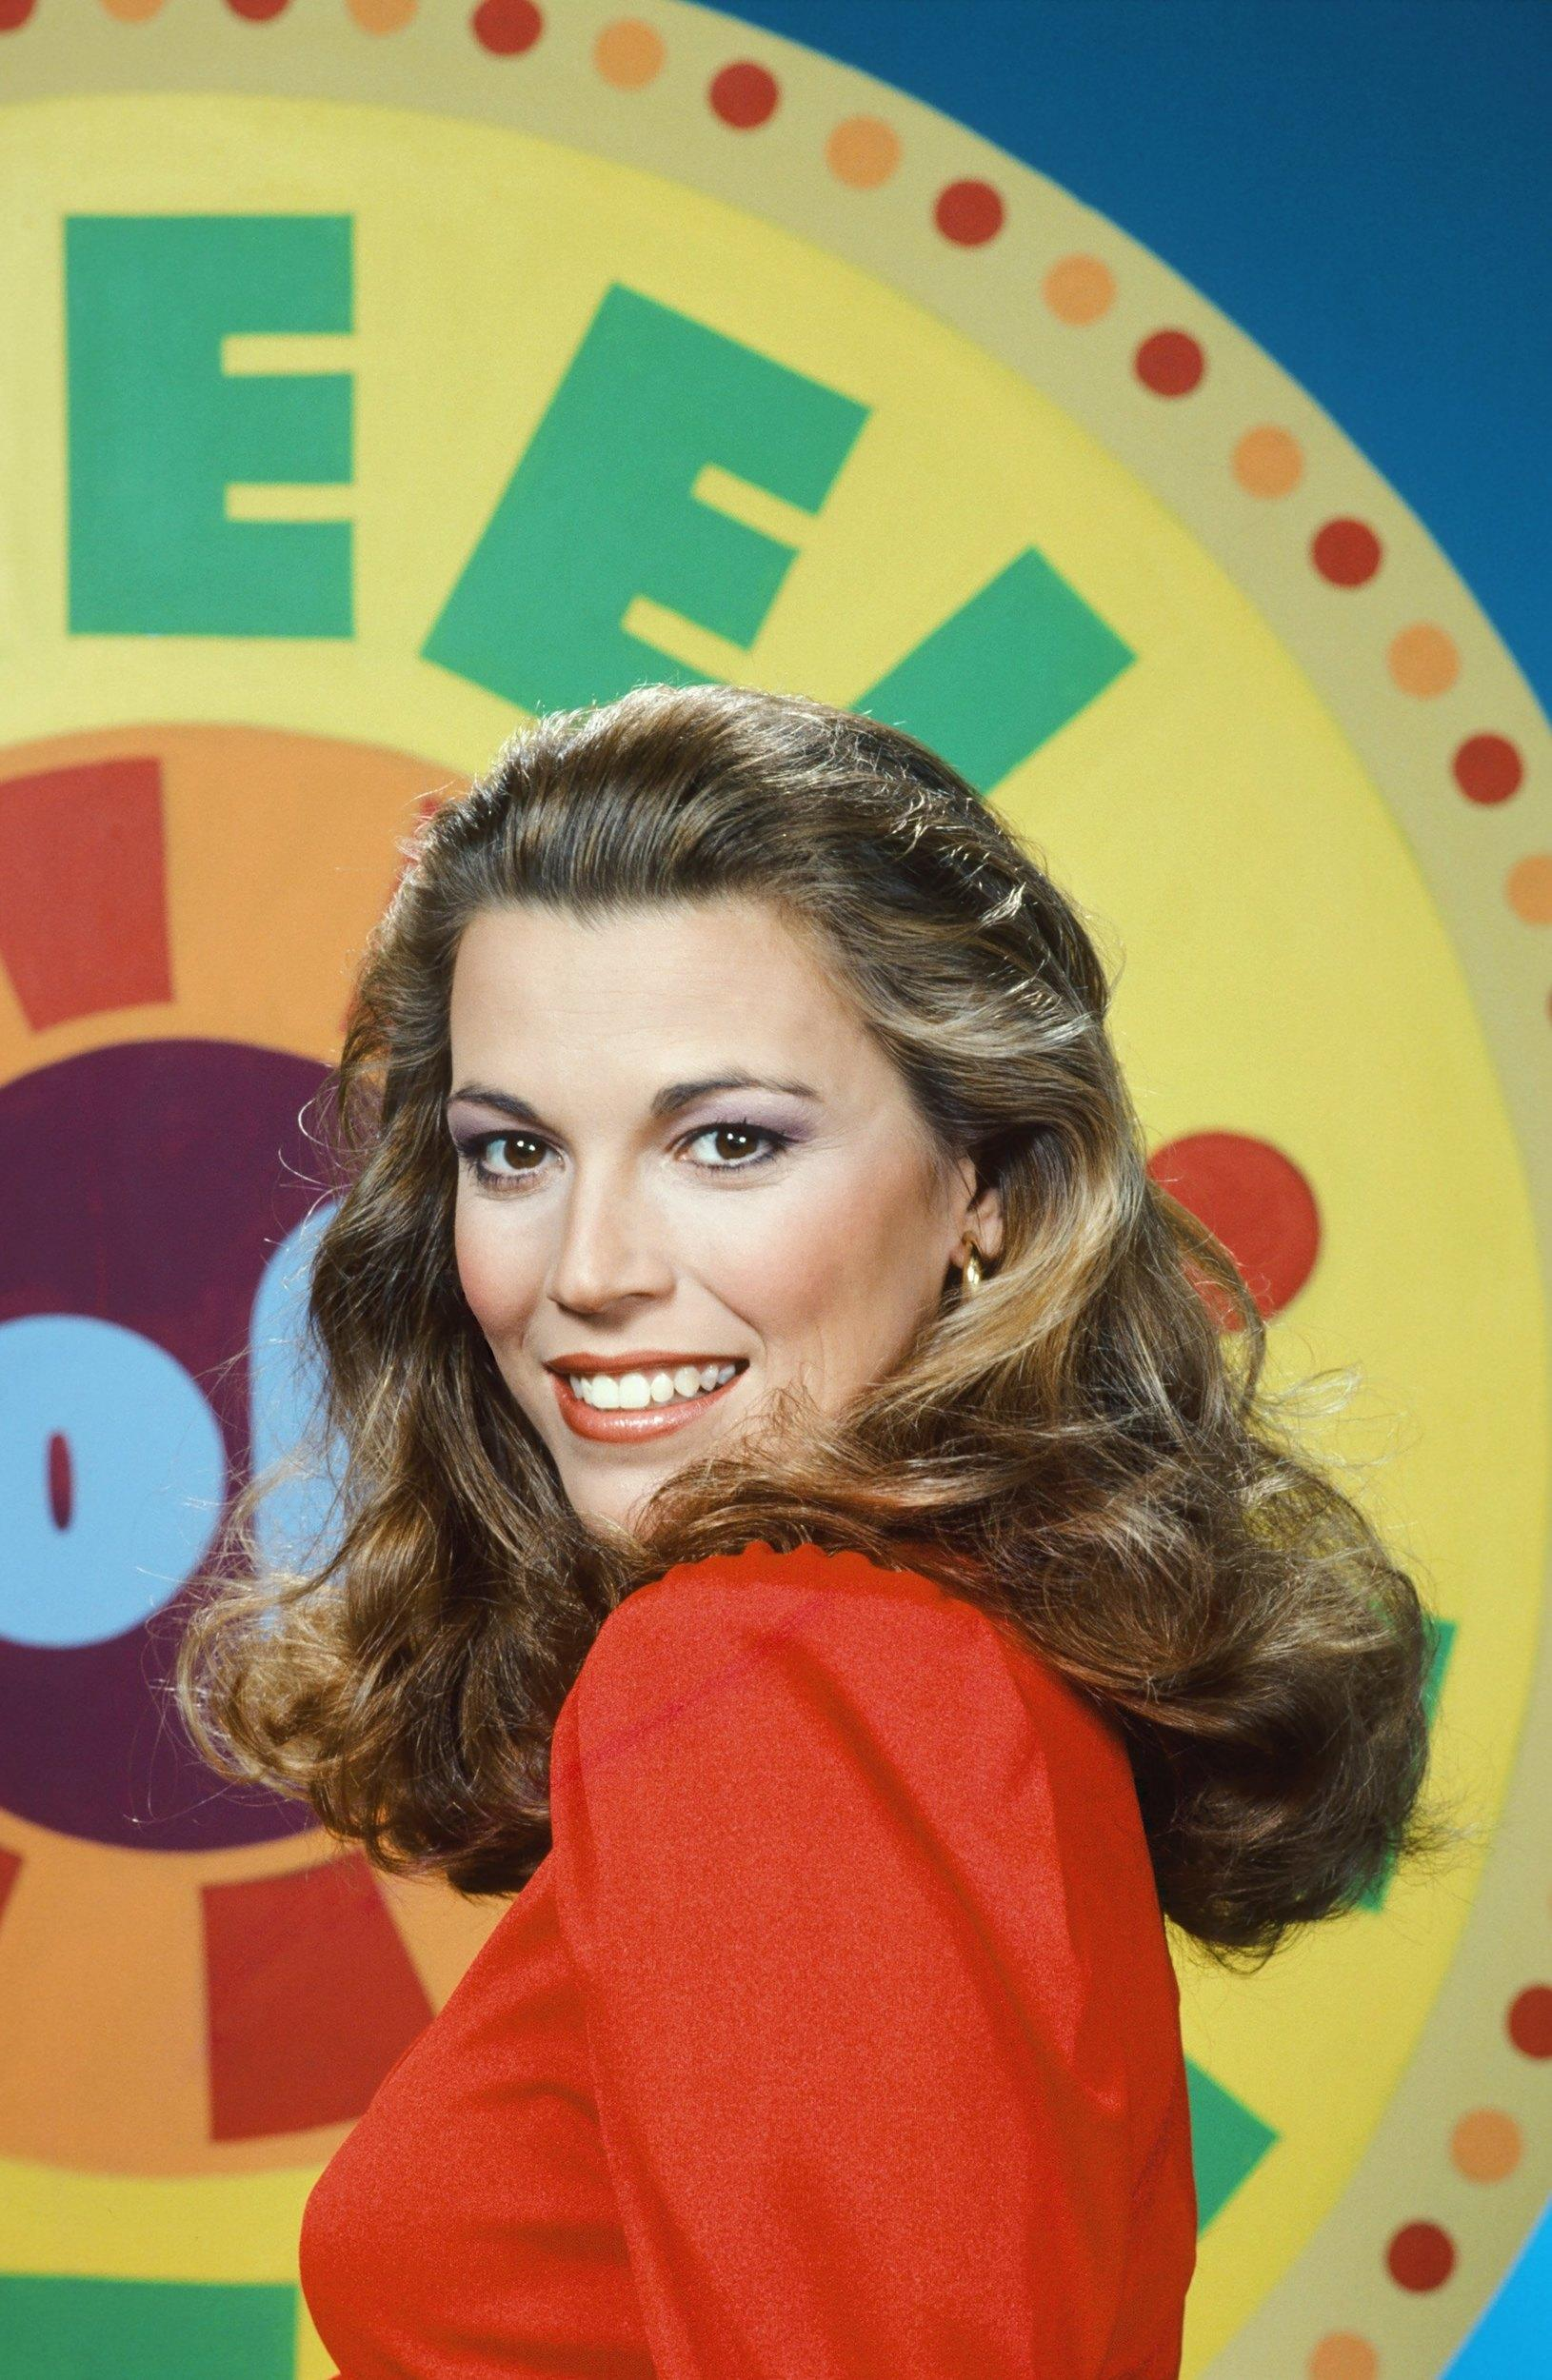 WHEEL OF FORTUNE -- Season 10 -- Pictured: Hostess Vanna White -- Photo by: Herb Ball/NBCU Photo Bank